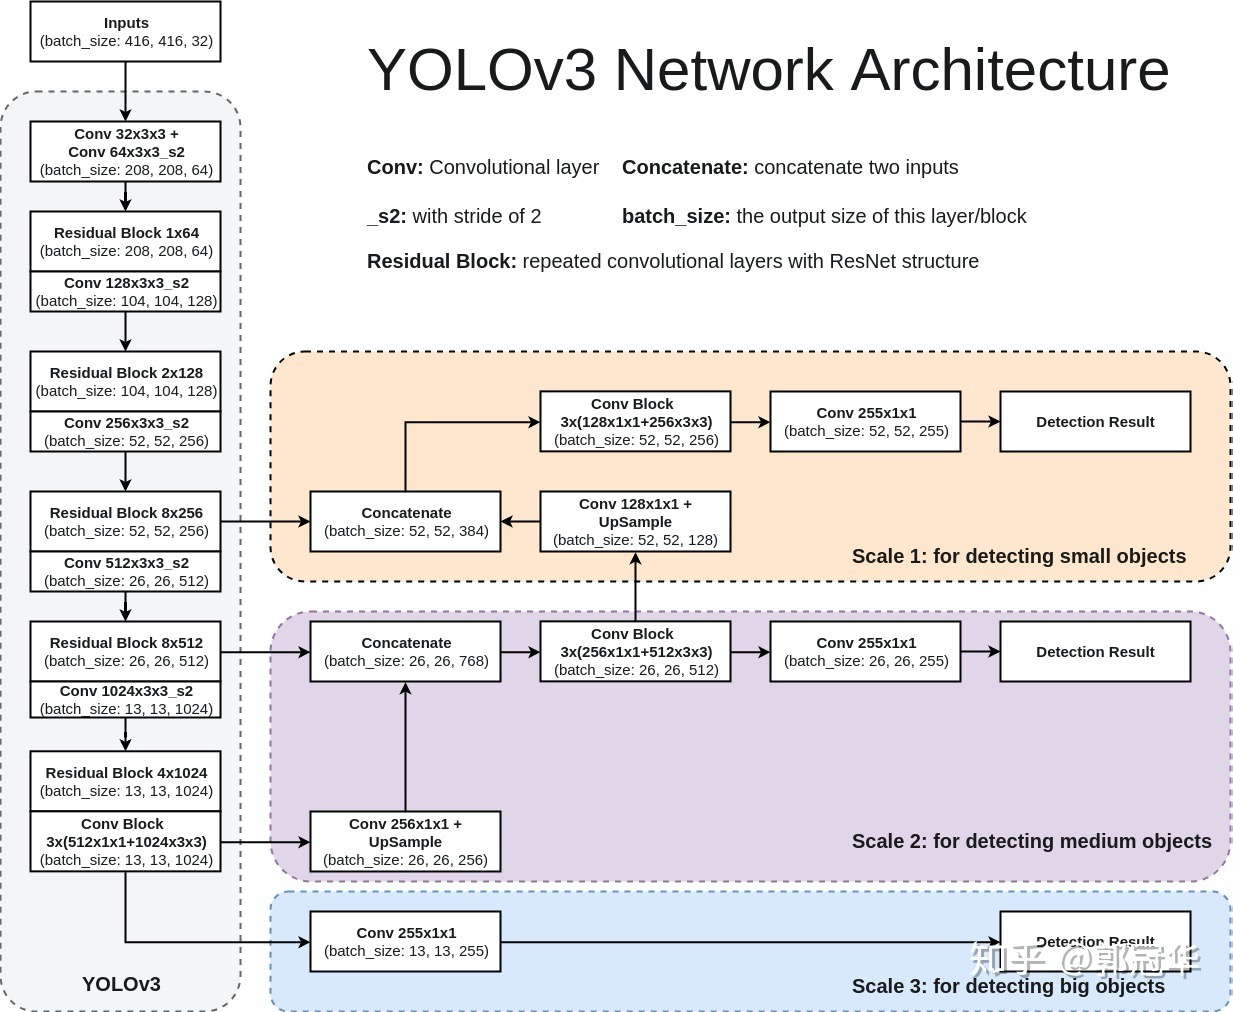 YOLOv3 Network Architecture